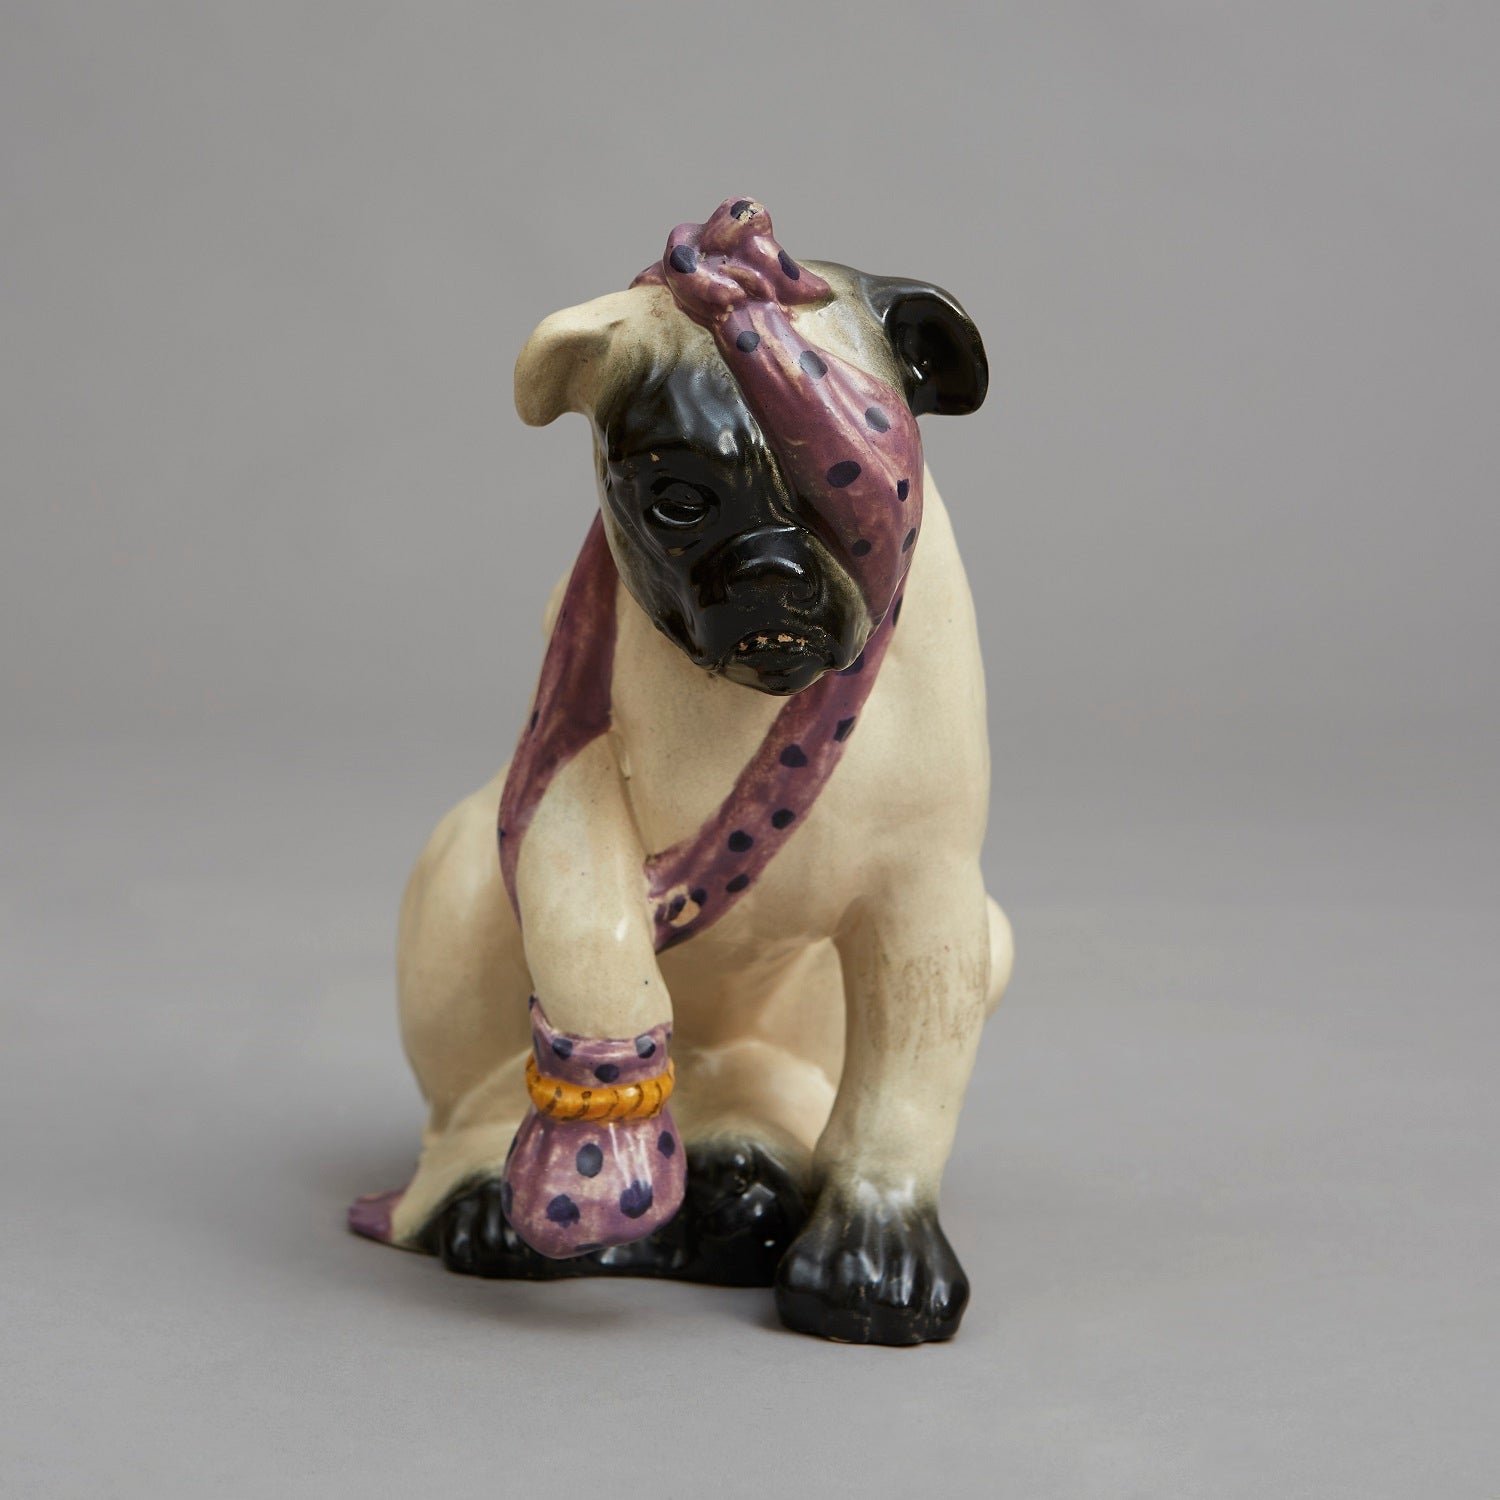 A Bretby Porcelain Seated Pug